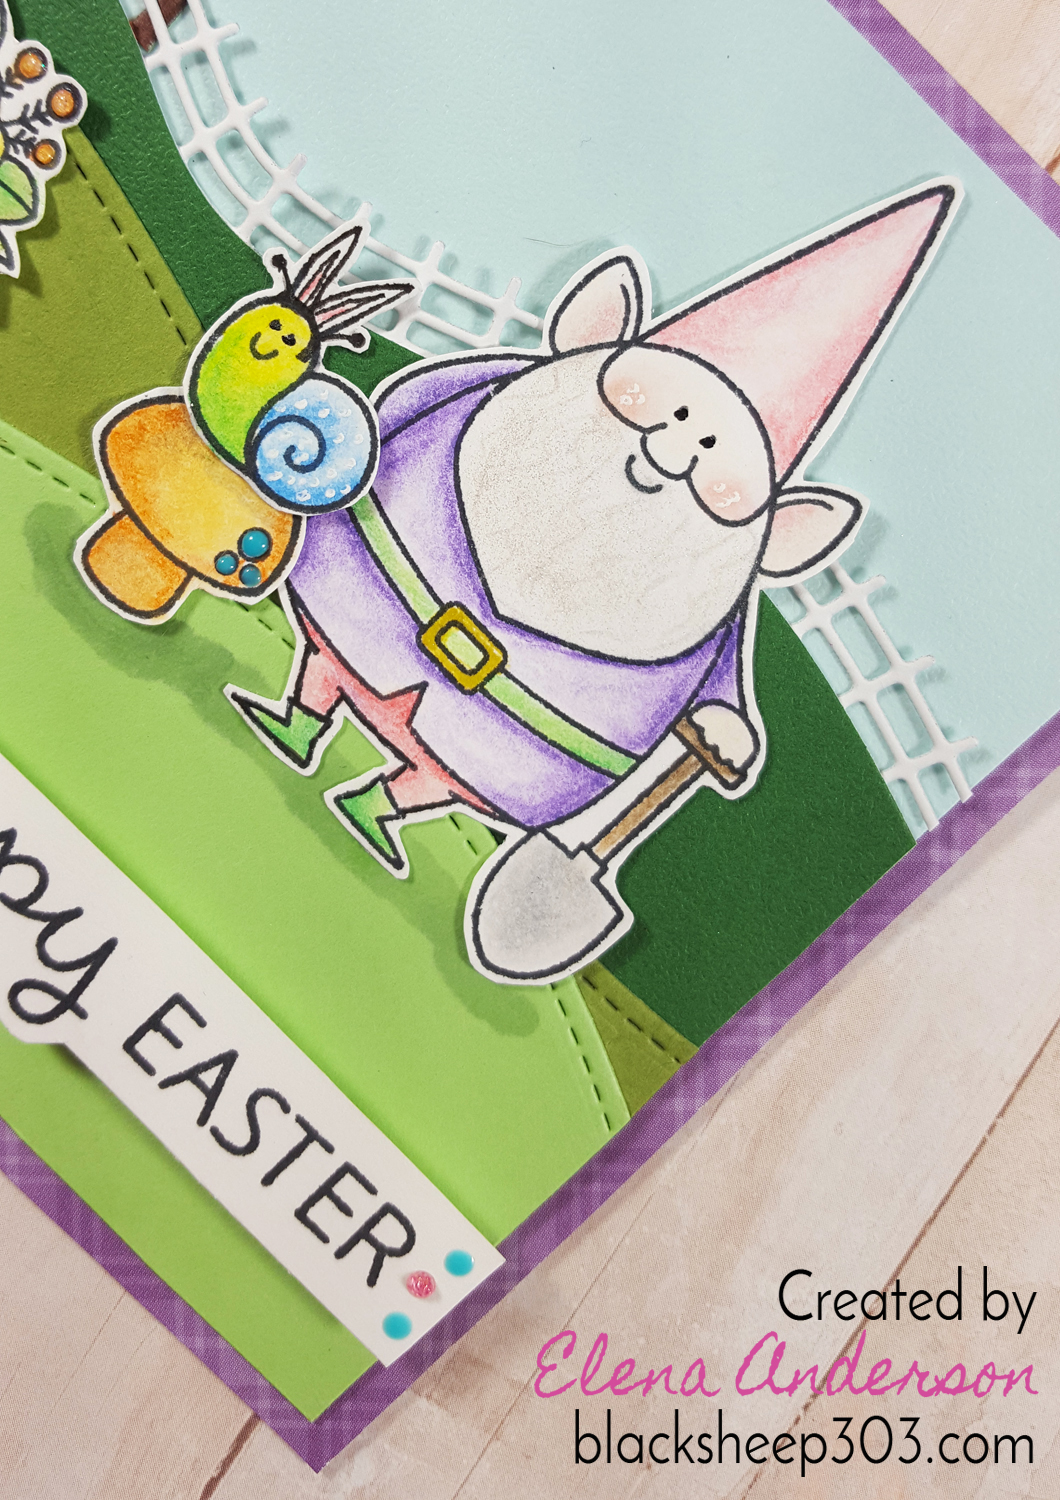 My Favorite Things You Gnome Me Easter Card - Detail